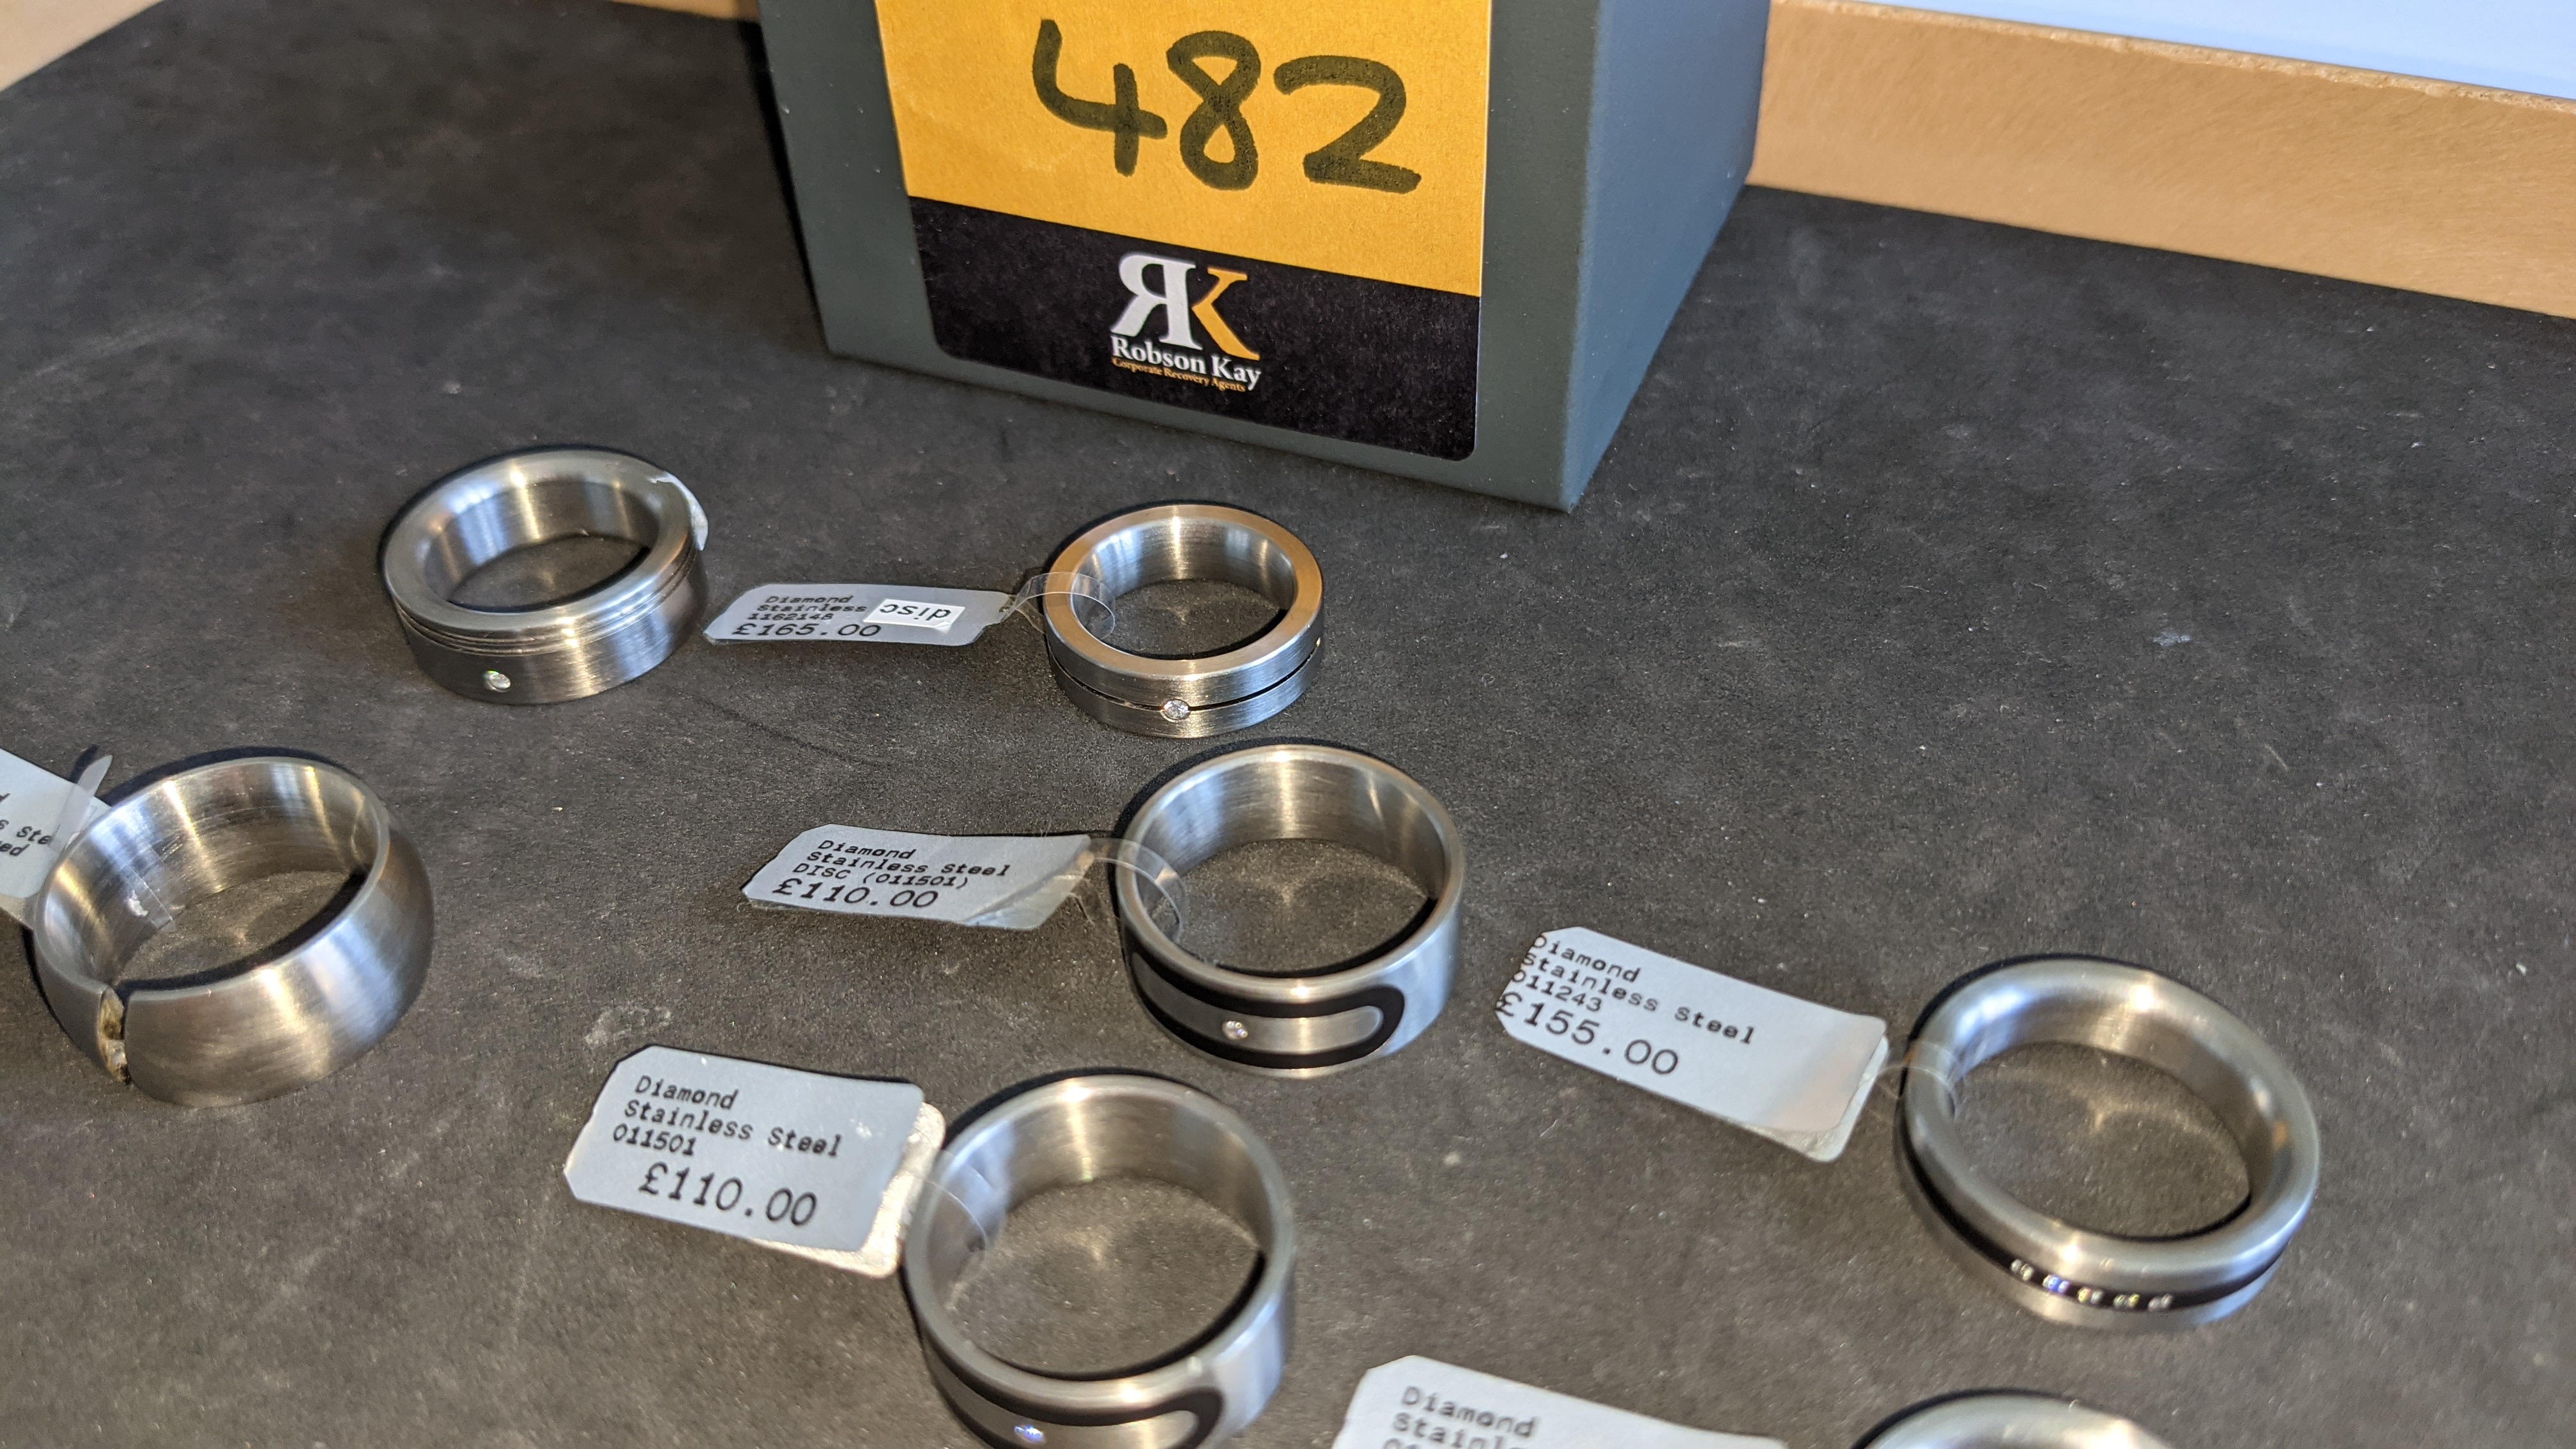 7 off assorted stainless steel & diamond rings. RRPs from £110 - £170. Total RRP £1,028 - Image 7 of 12